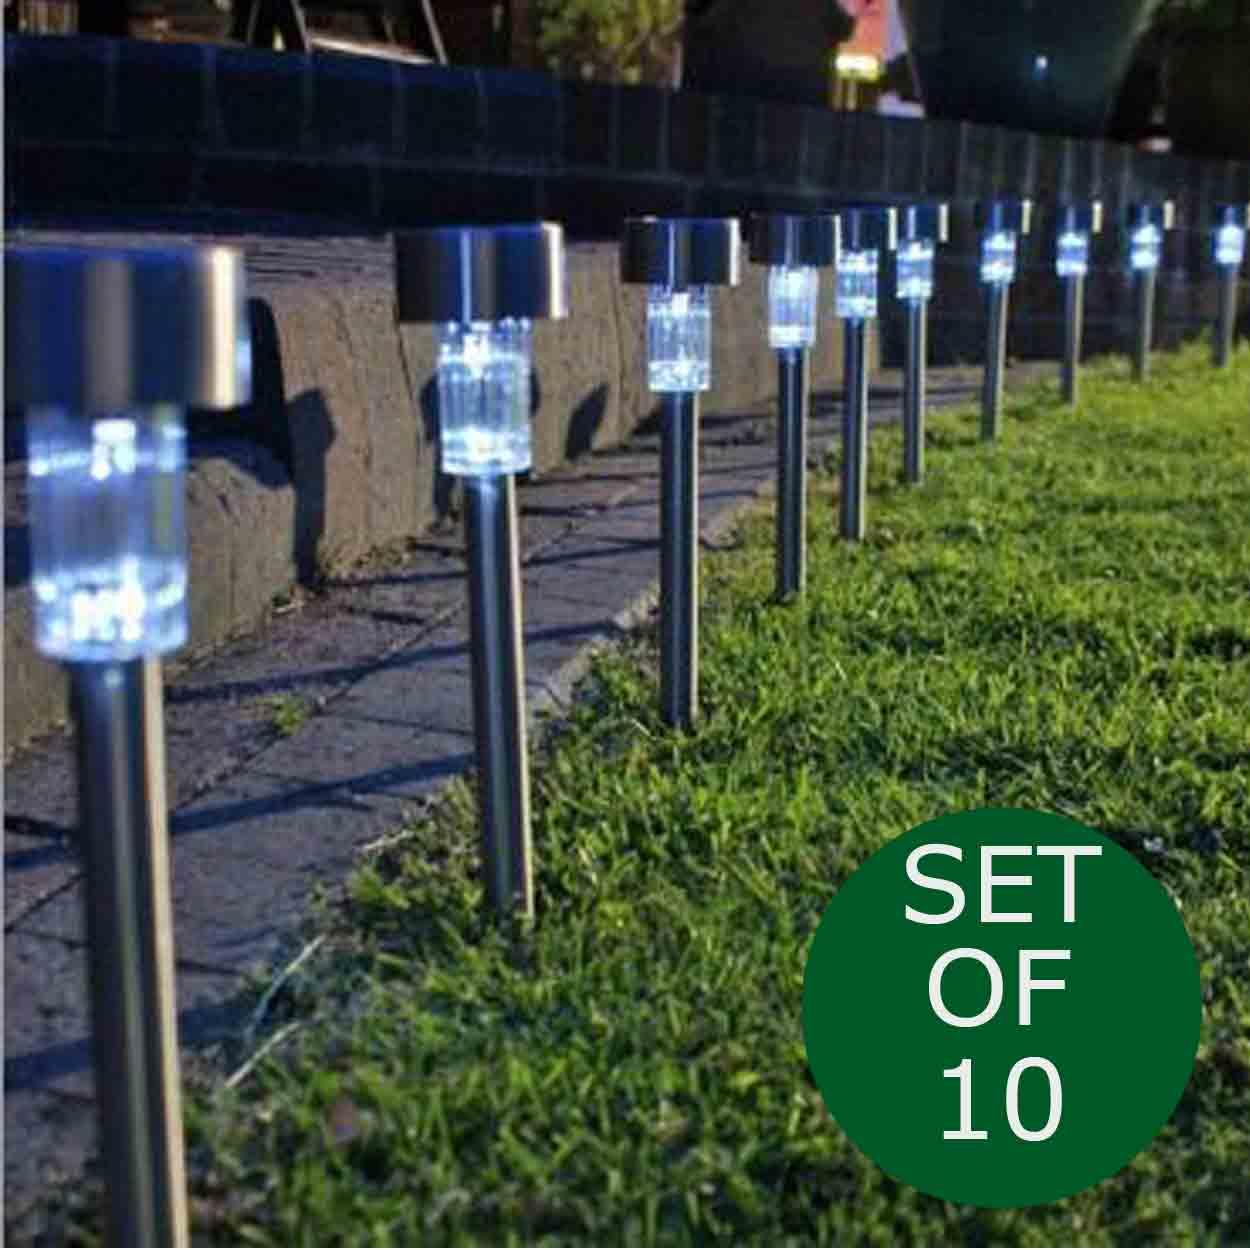 Outdoor Lighting For Sale Lights Prices Brands Review Garden Using Solar Cells 10 Pack Pathway Landscape